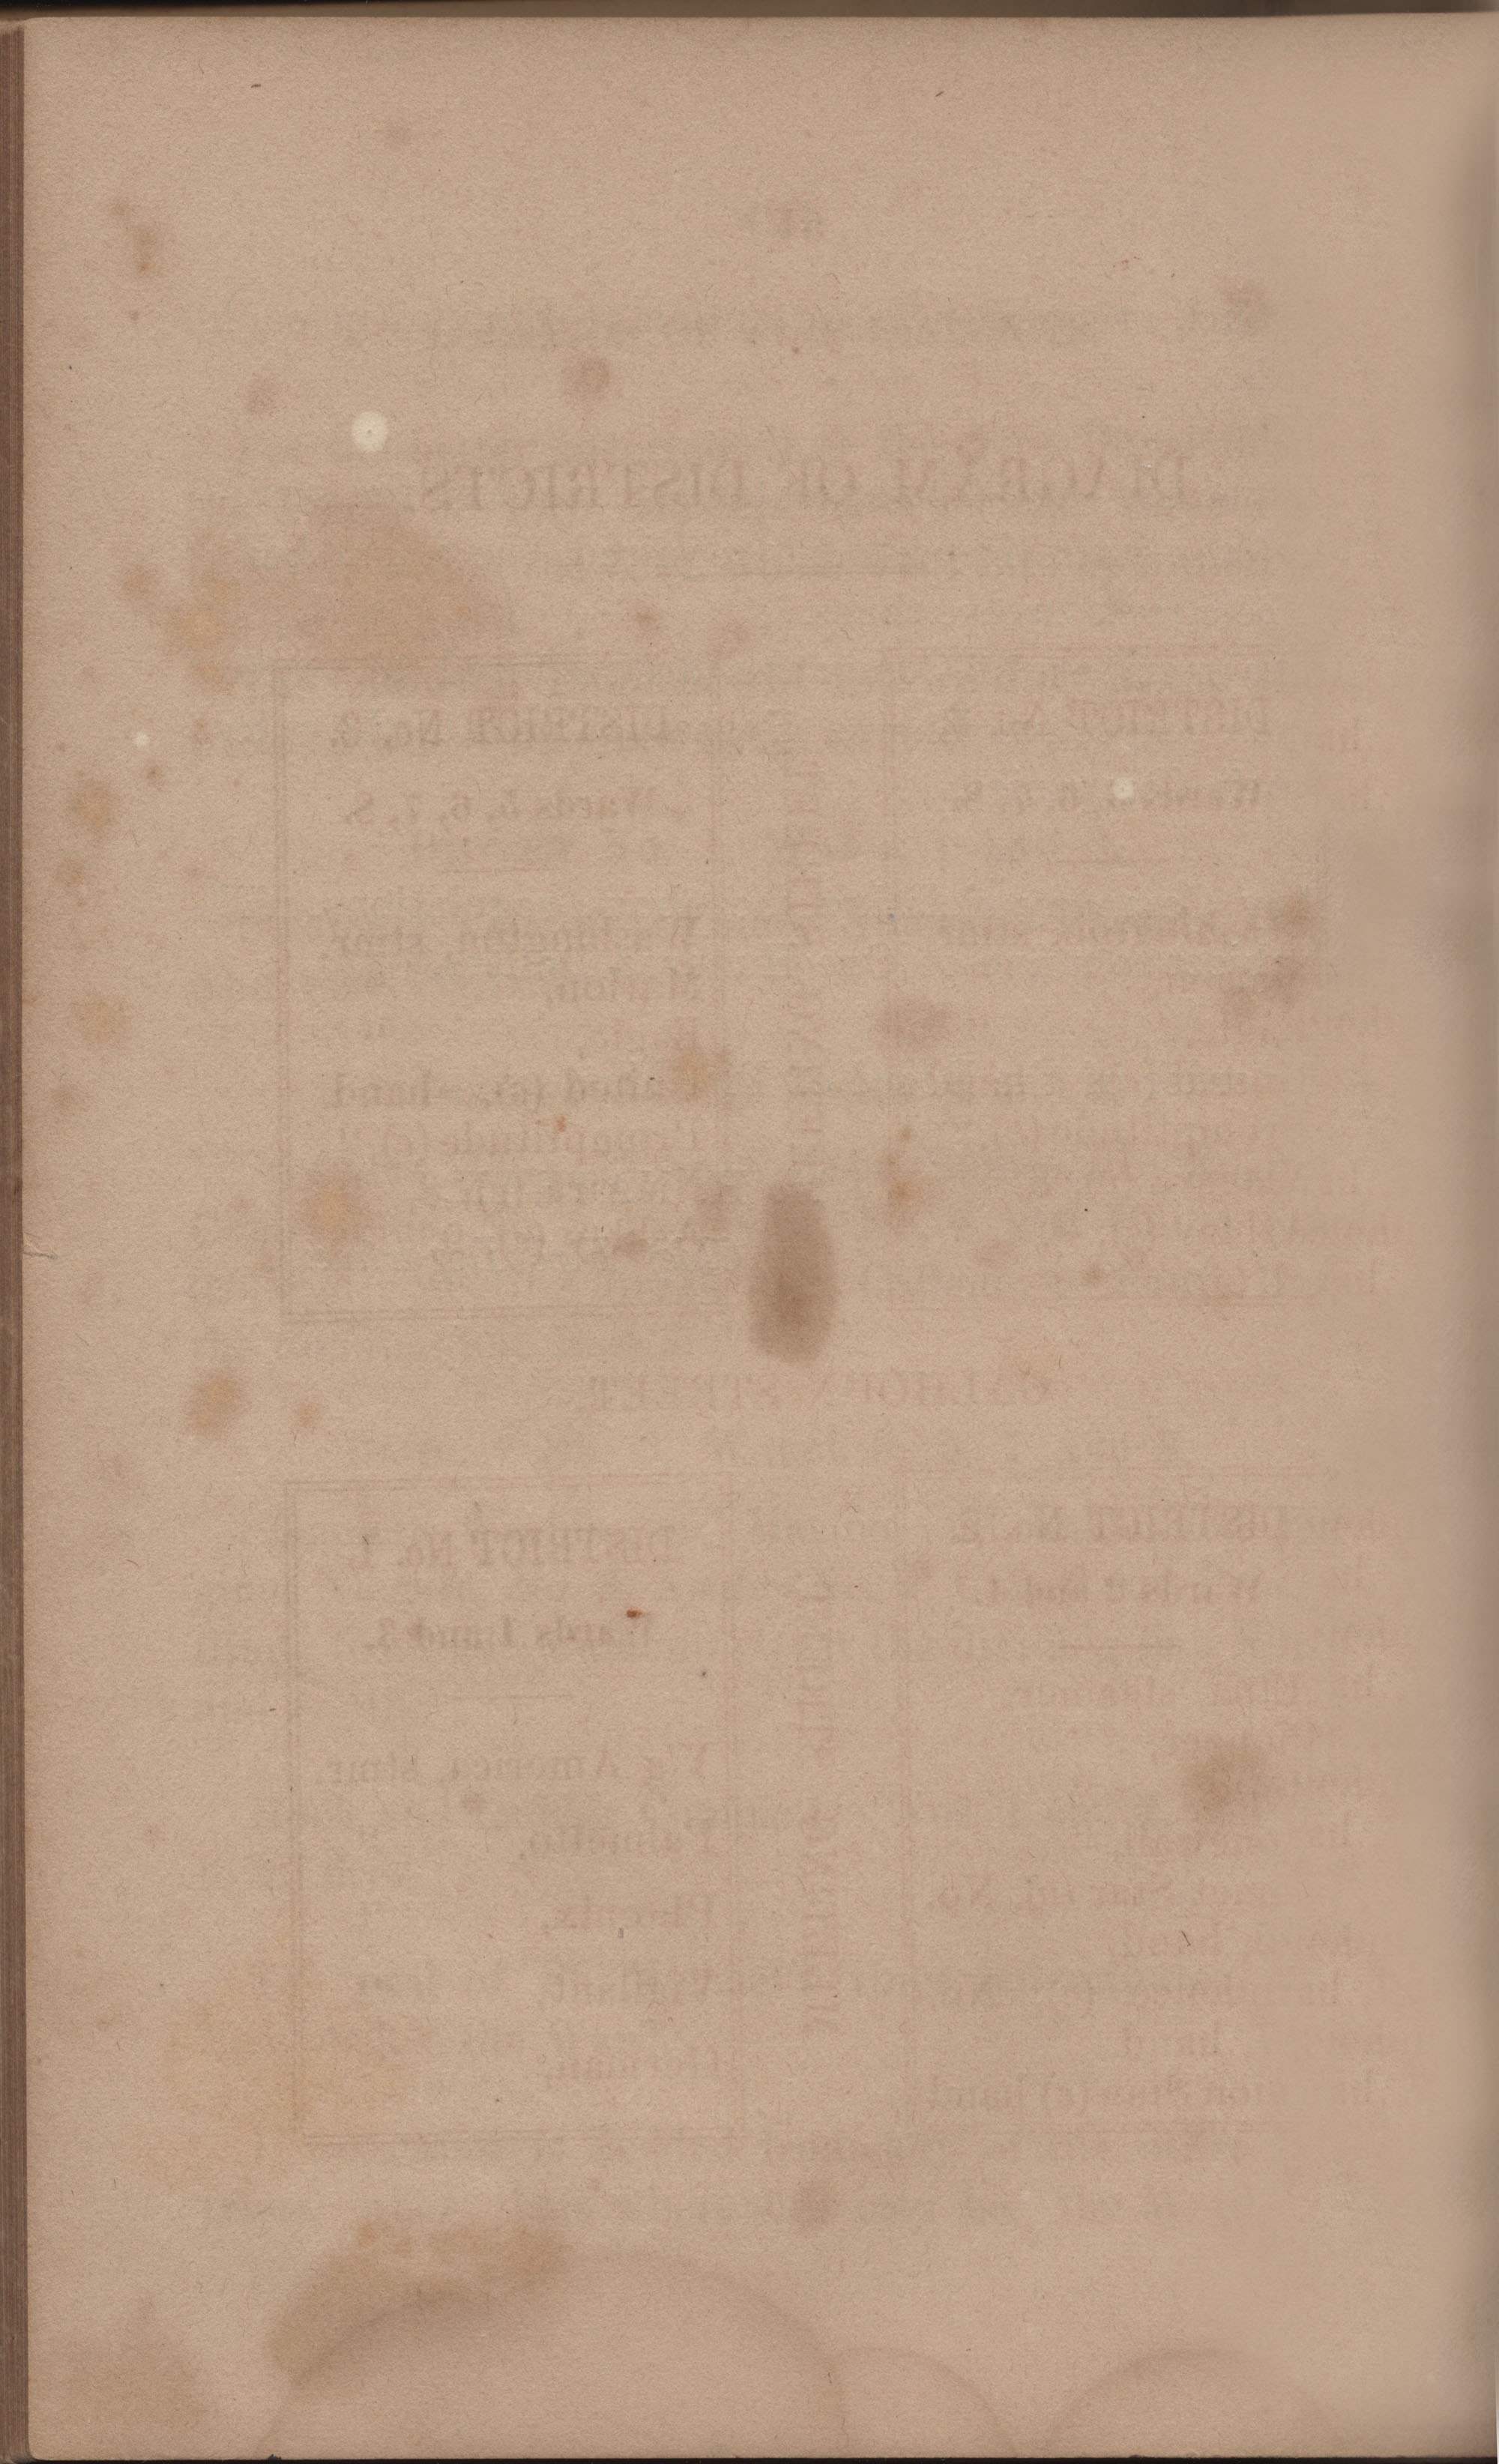 Annual Report of the Chief of the Fire Department of the City of Charleston, blank page